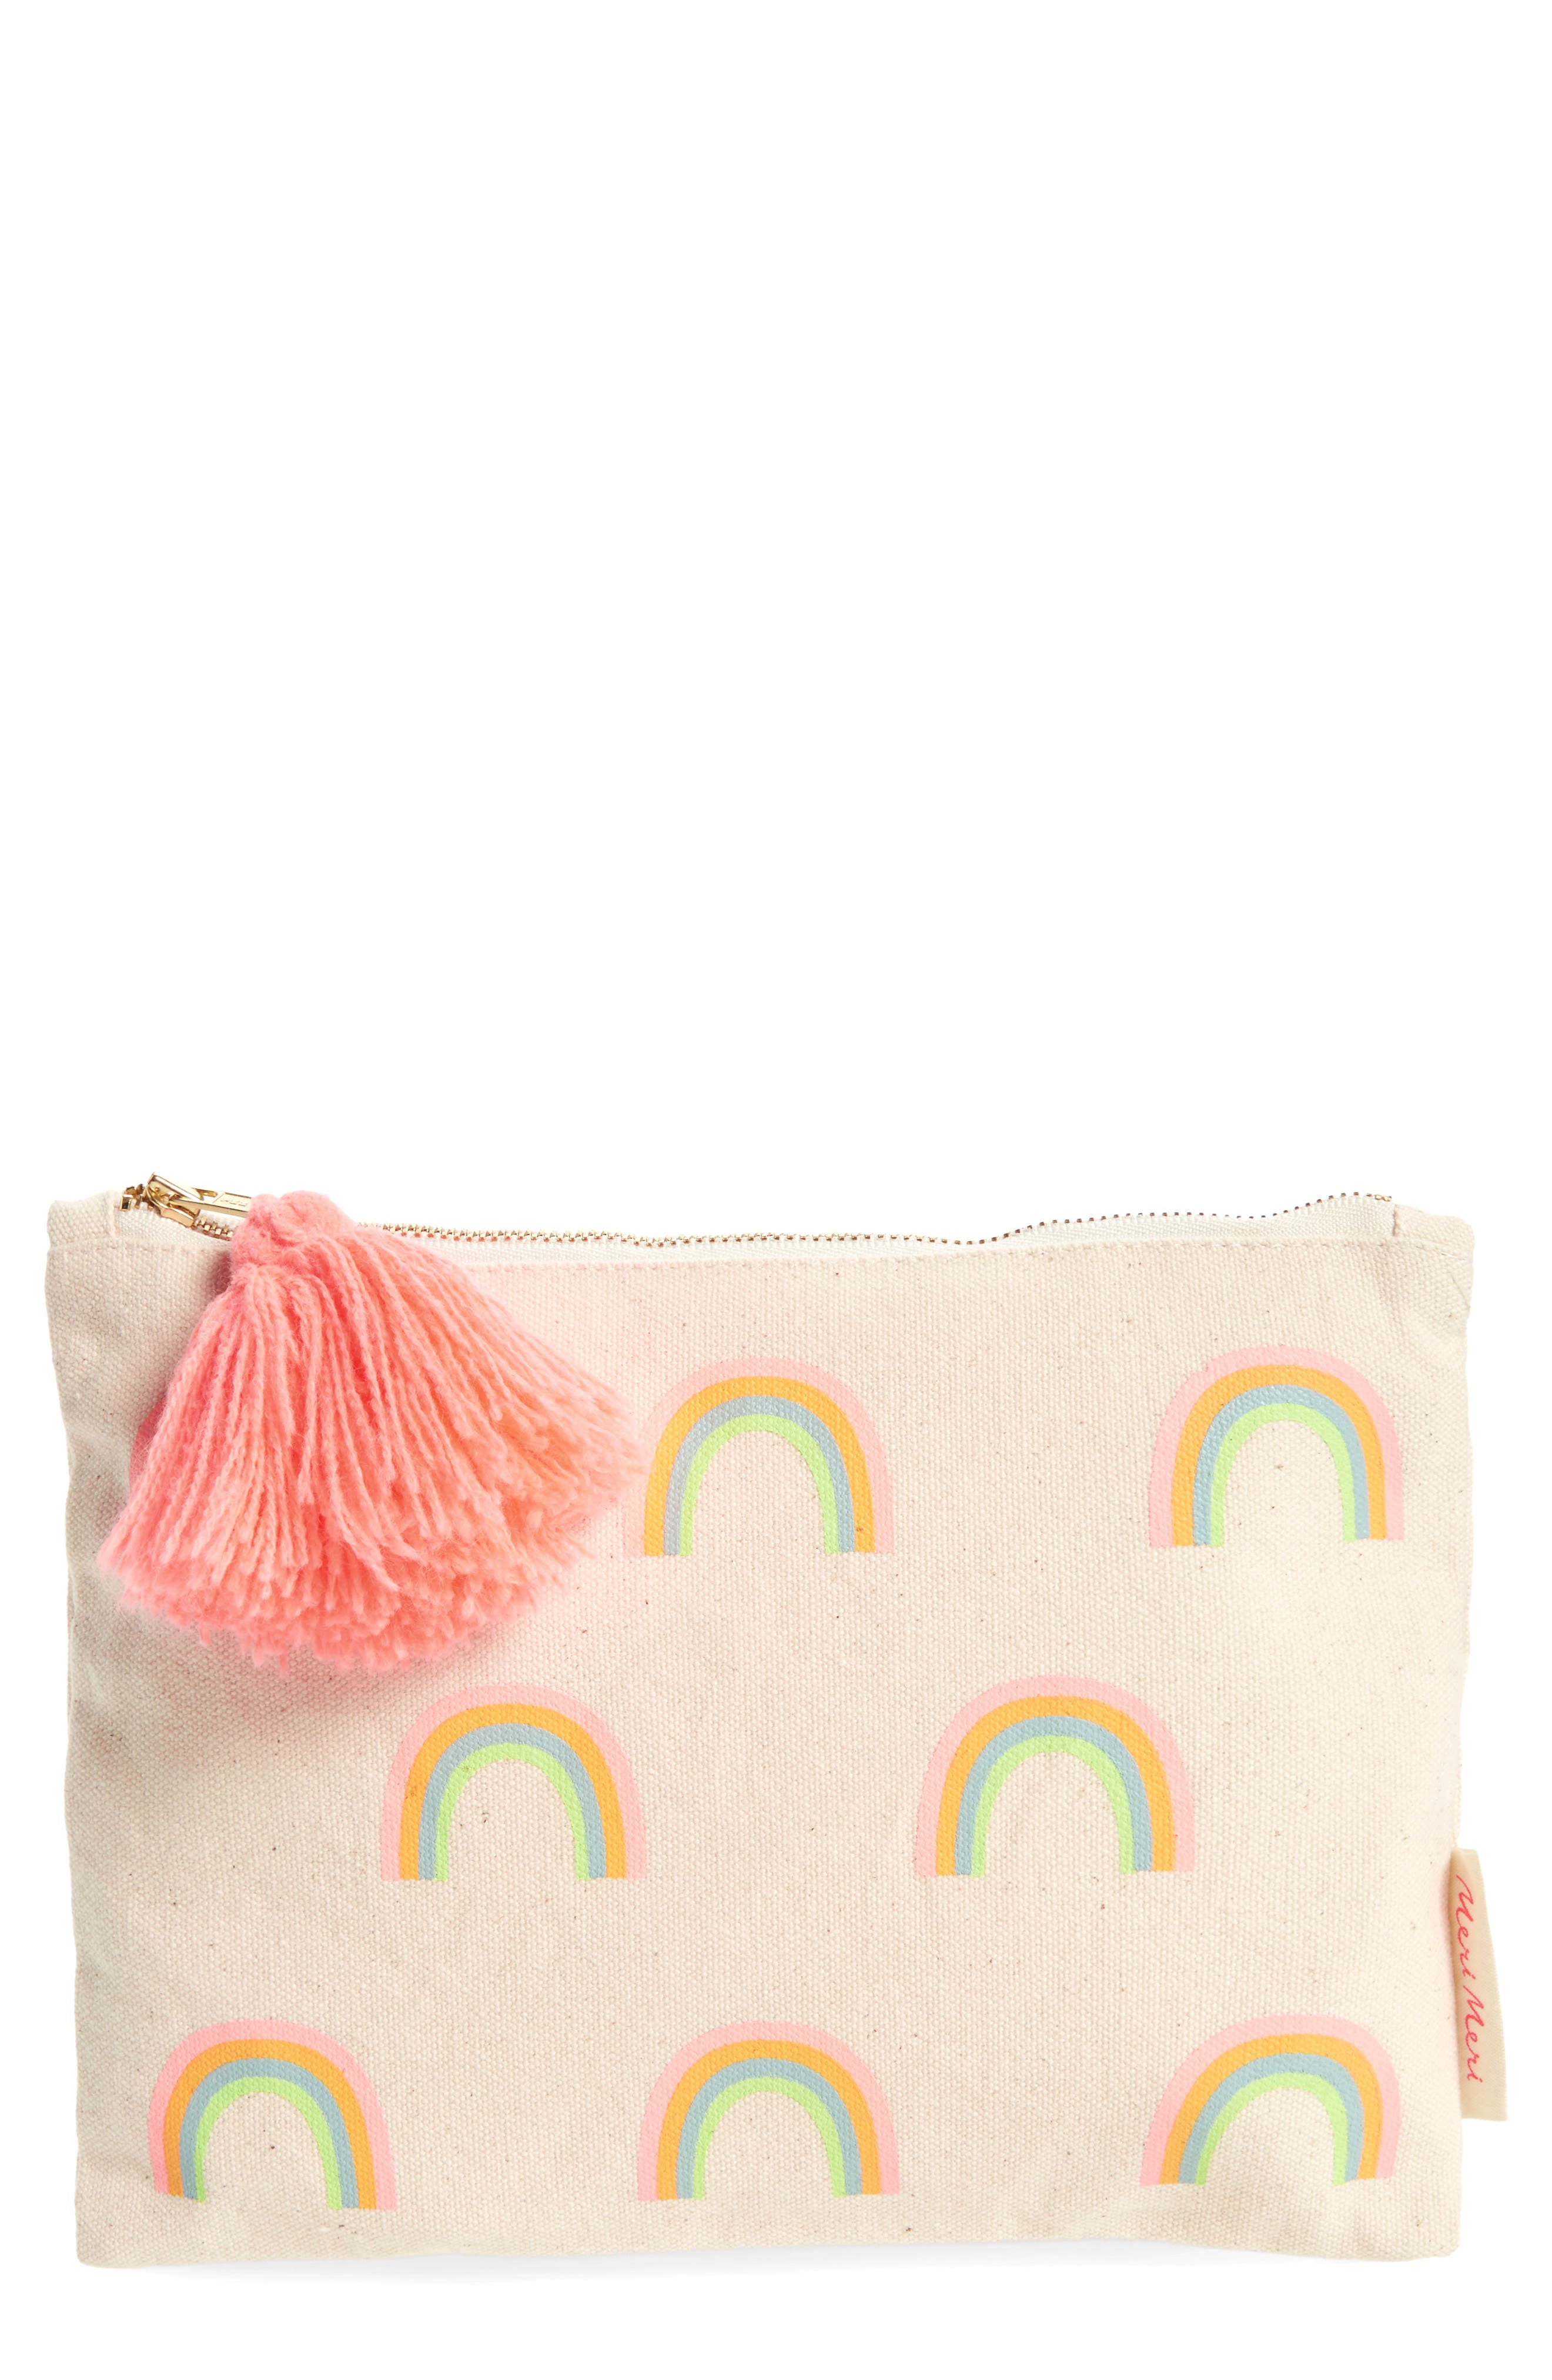 Large Rainbow Zip Pouch,                         Main,                         color, Cream Multi